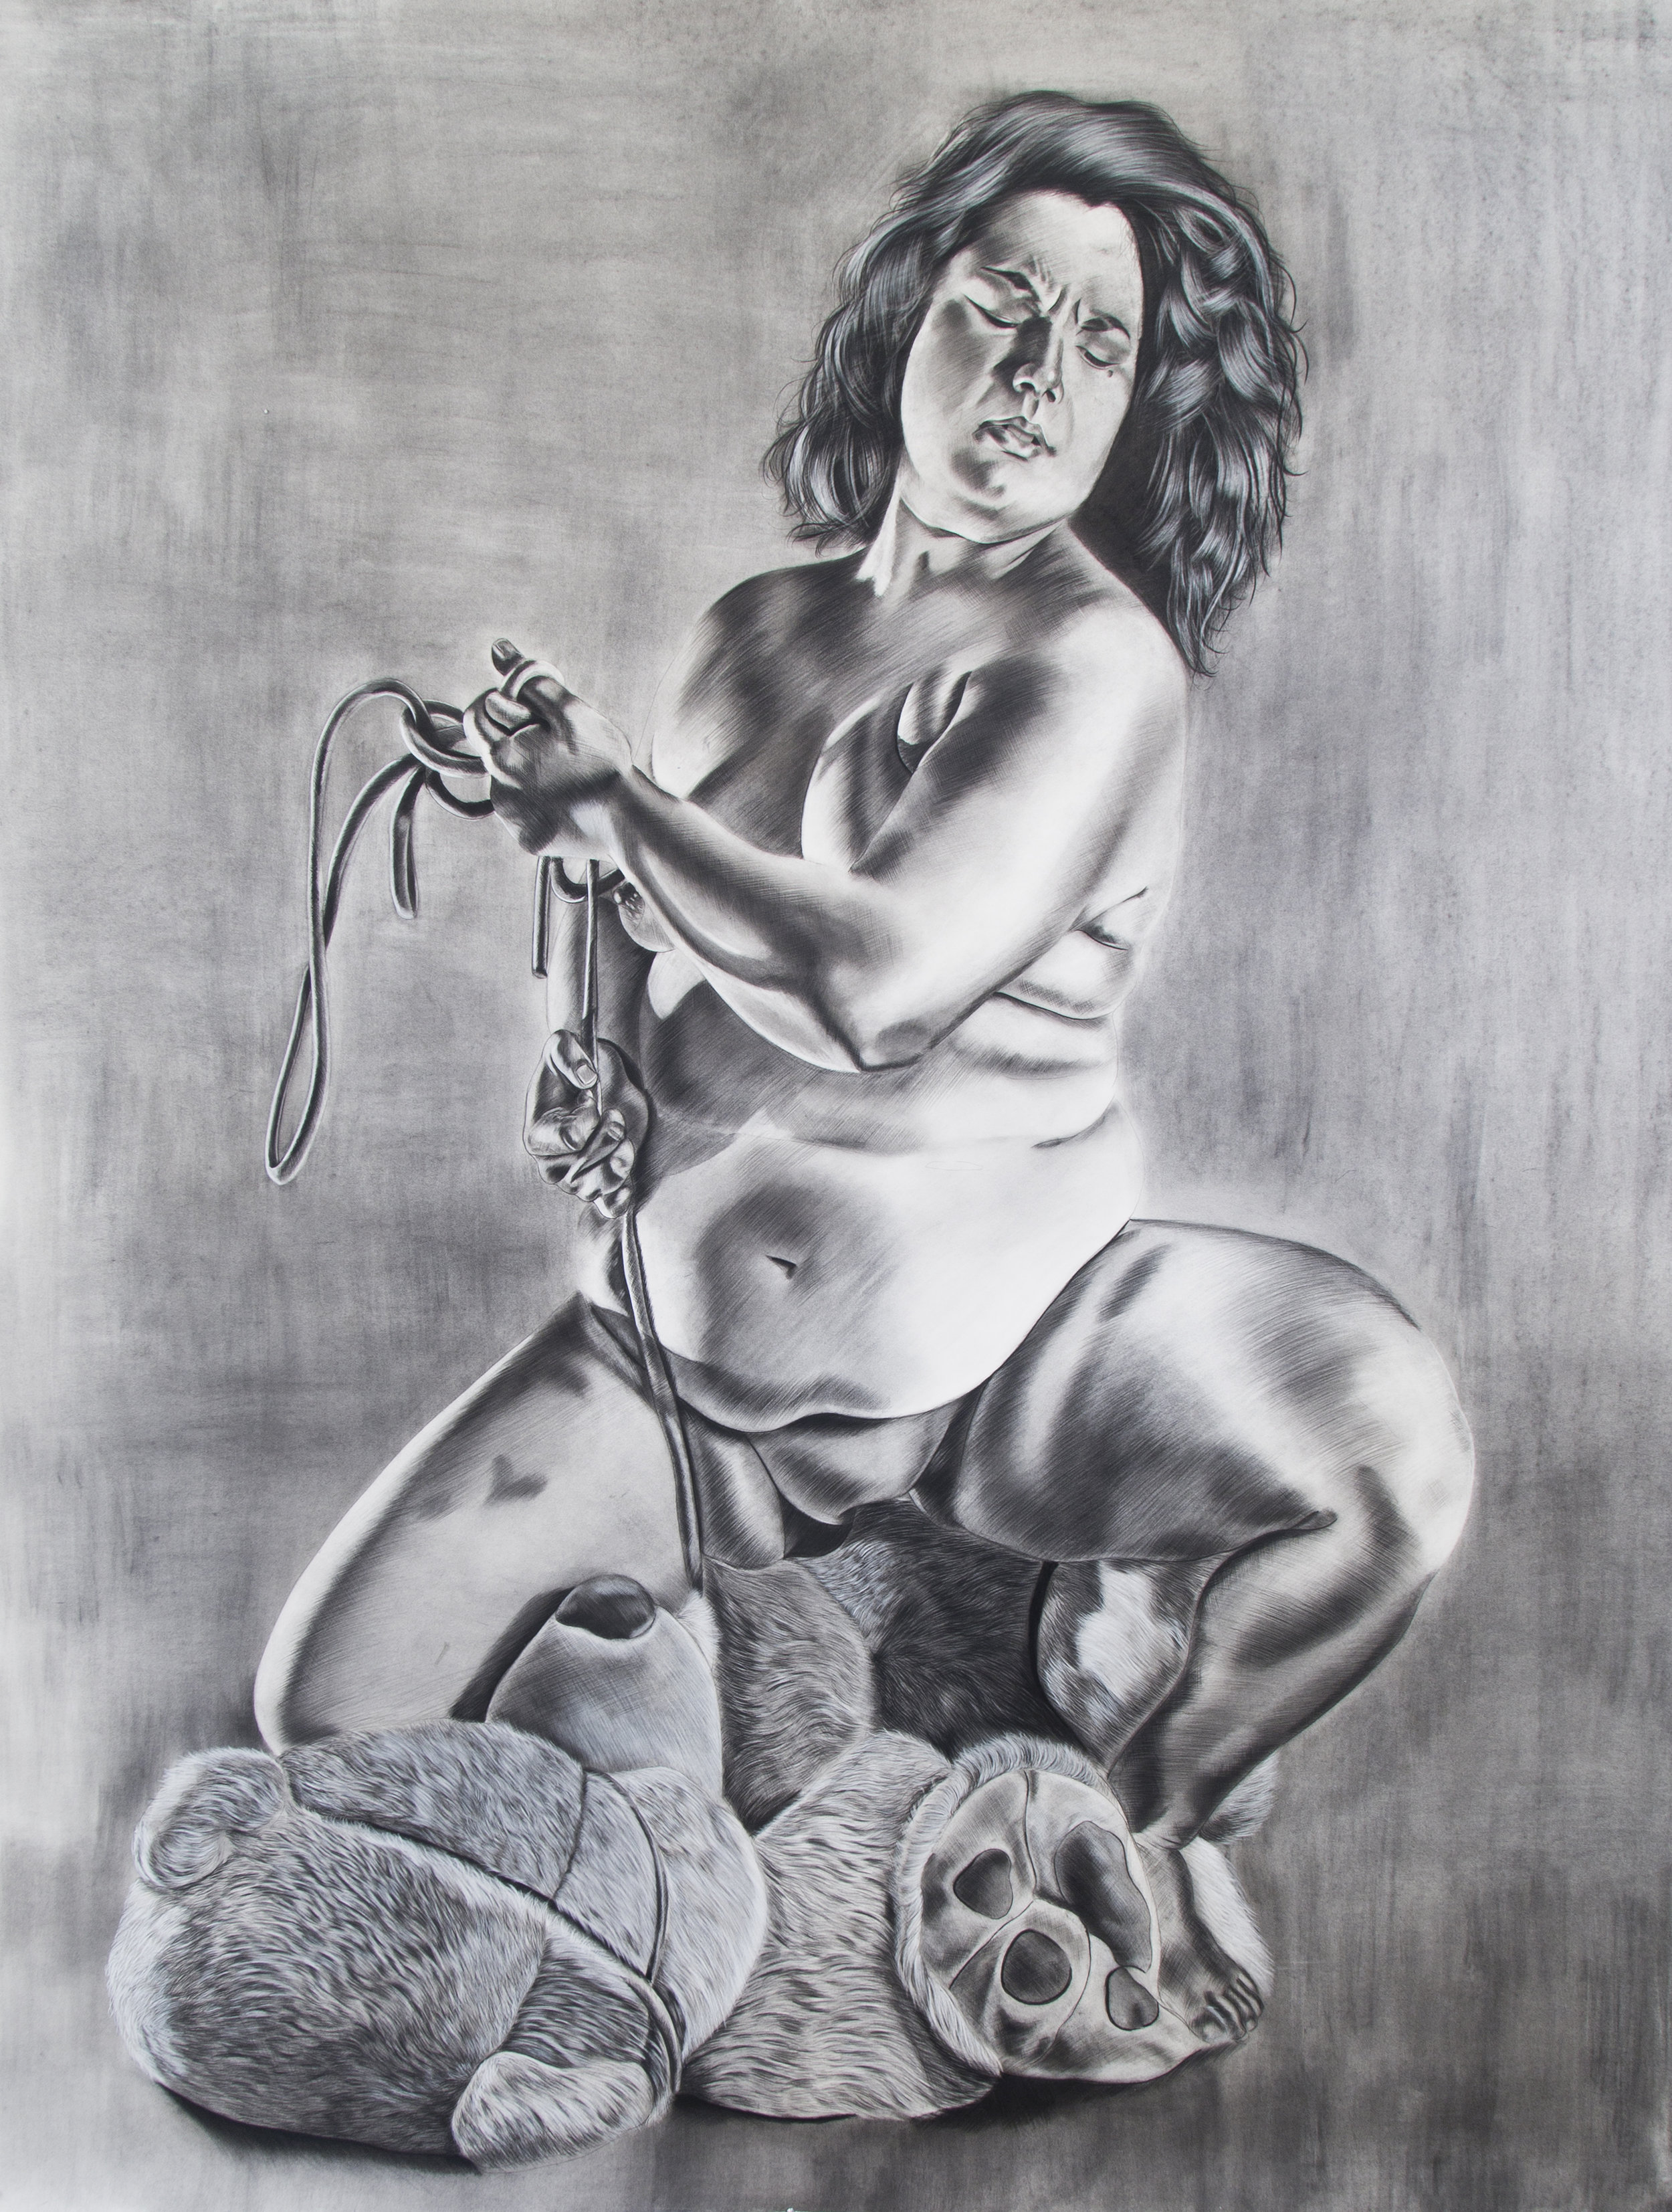 Freak on a Leash,  93 x 72 inches, Charcoal on paper. 2016